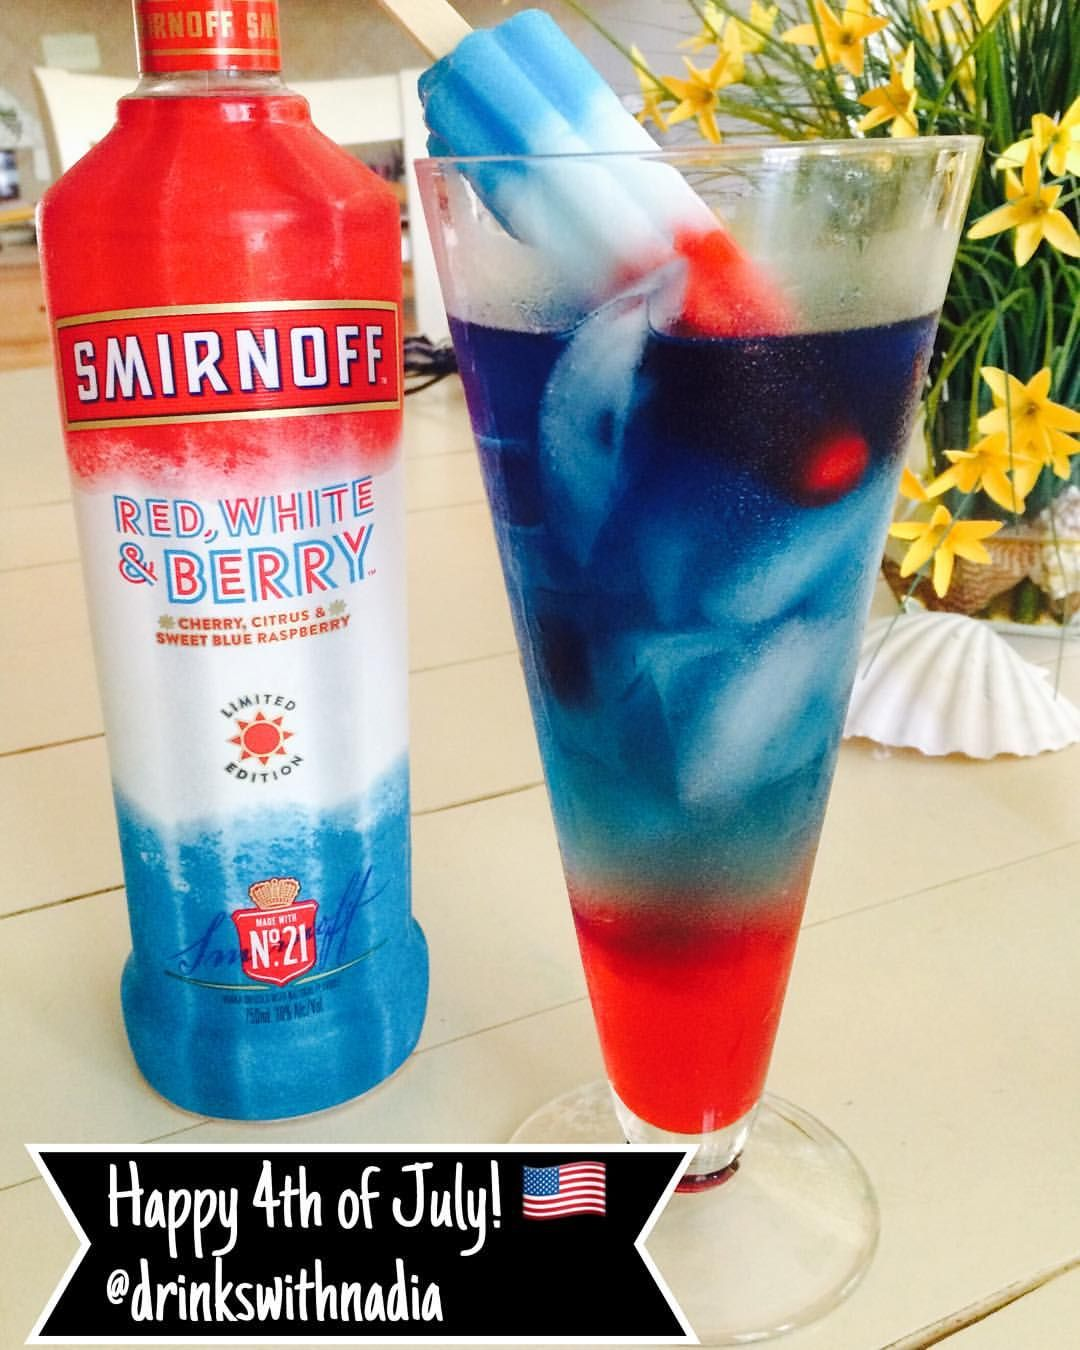 Happy 4th Of July Diageorep Smirnoff Red White Berry Vodka